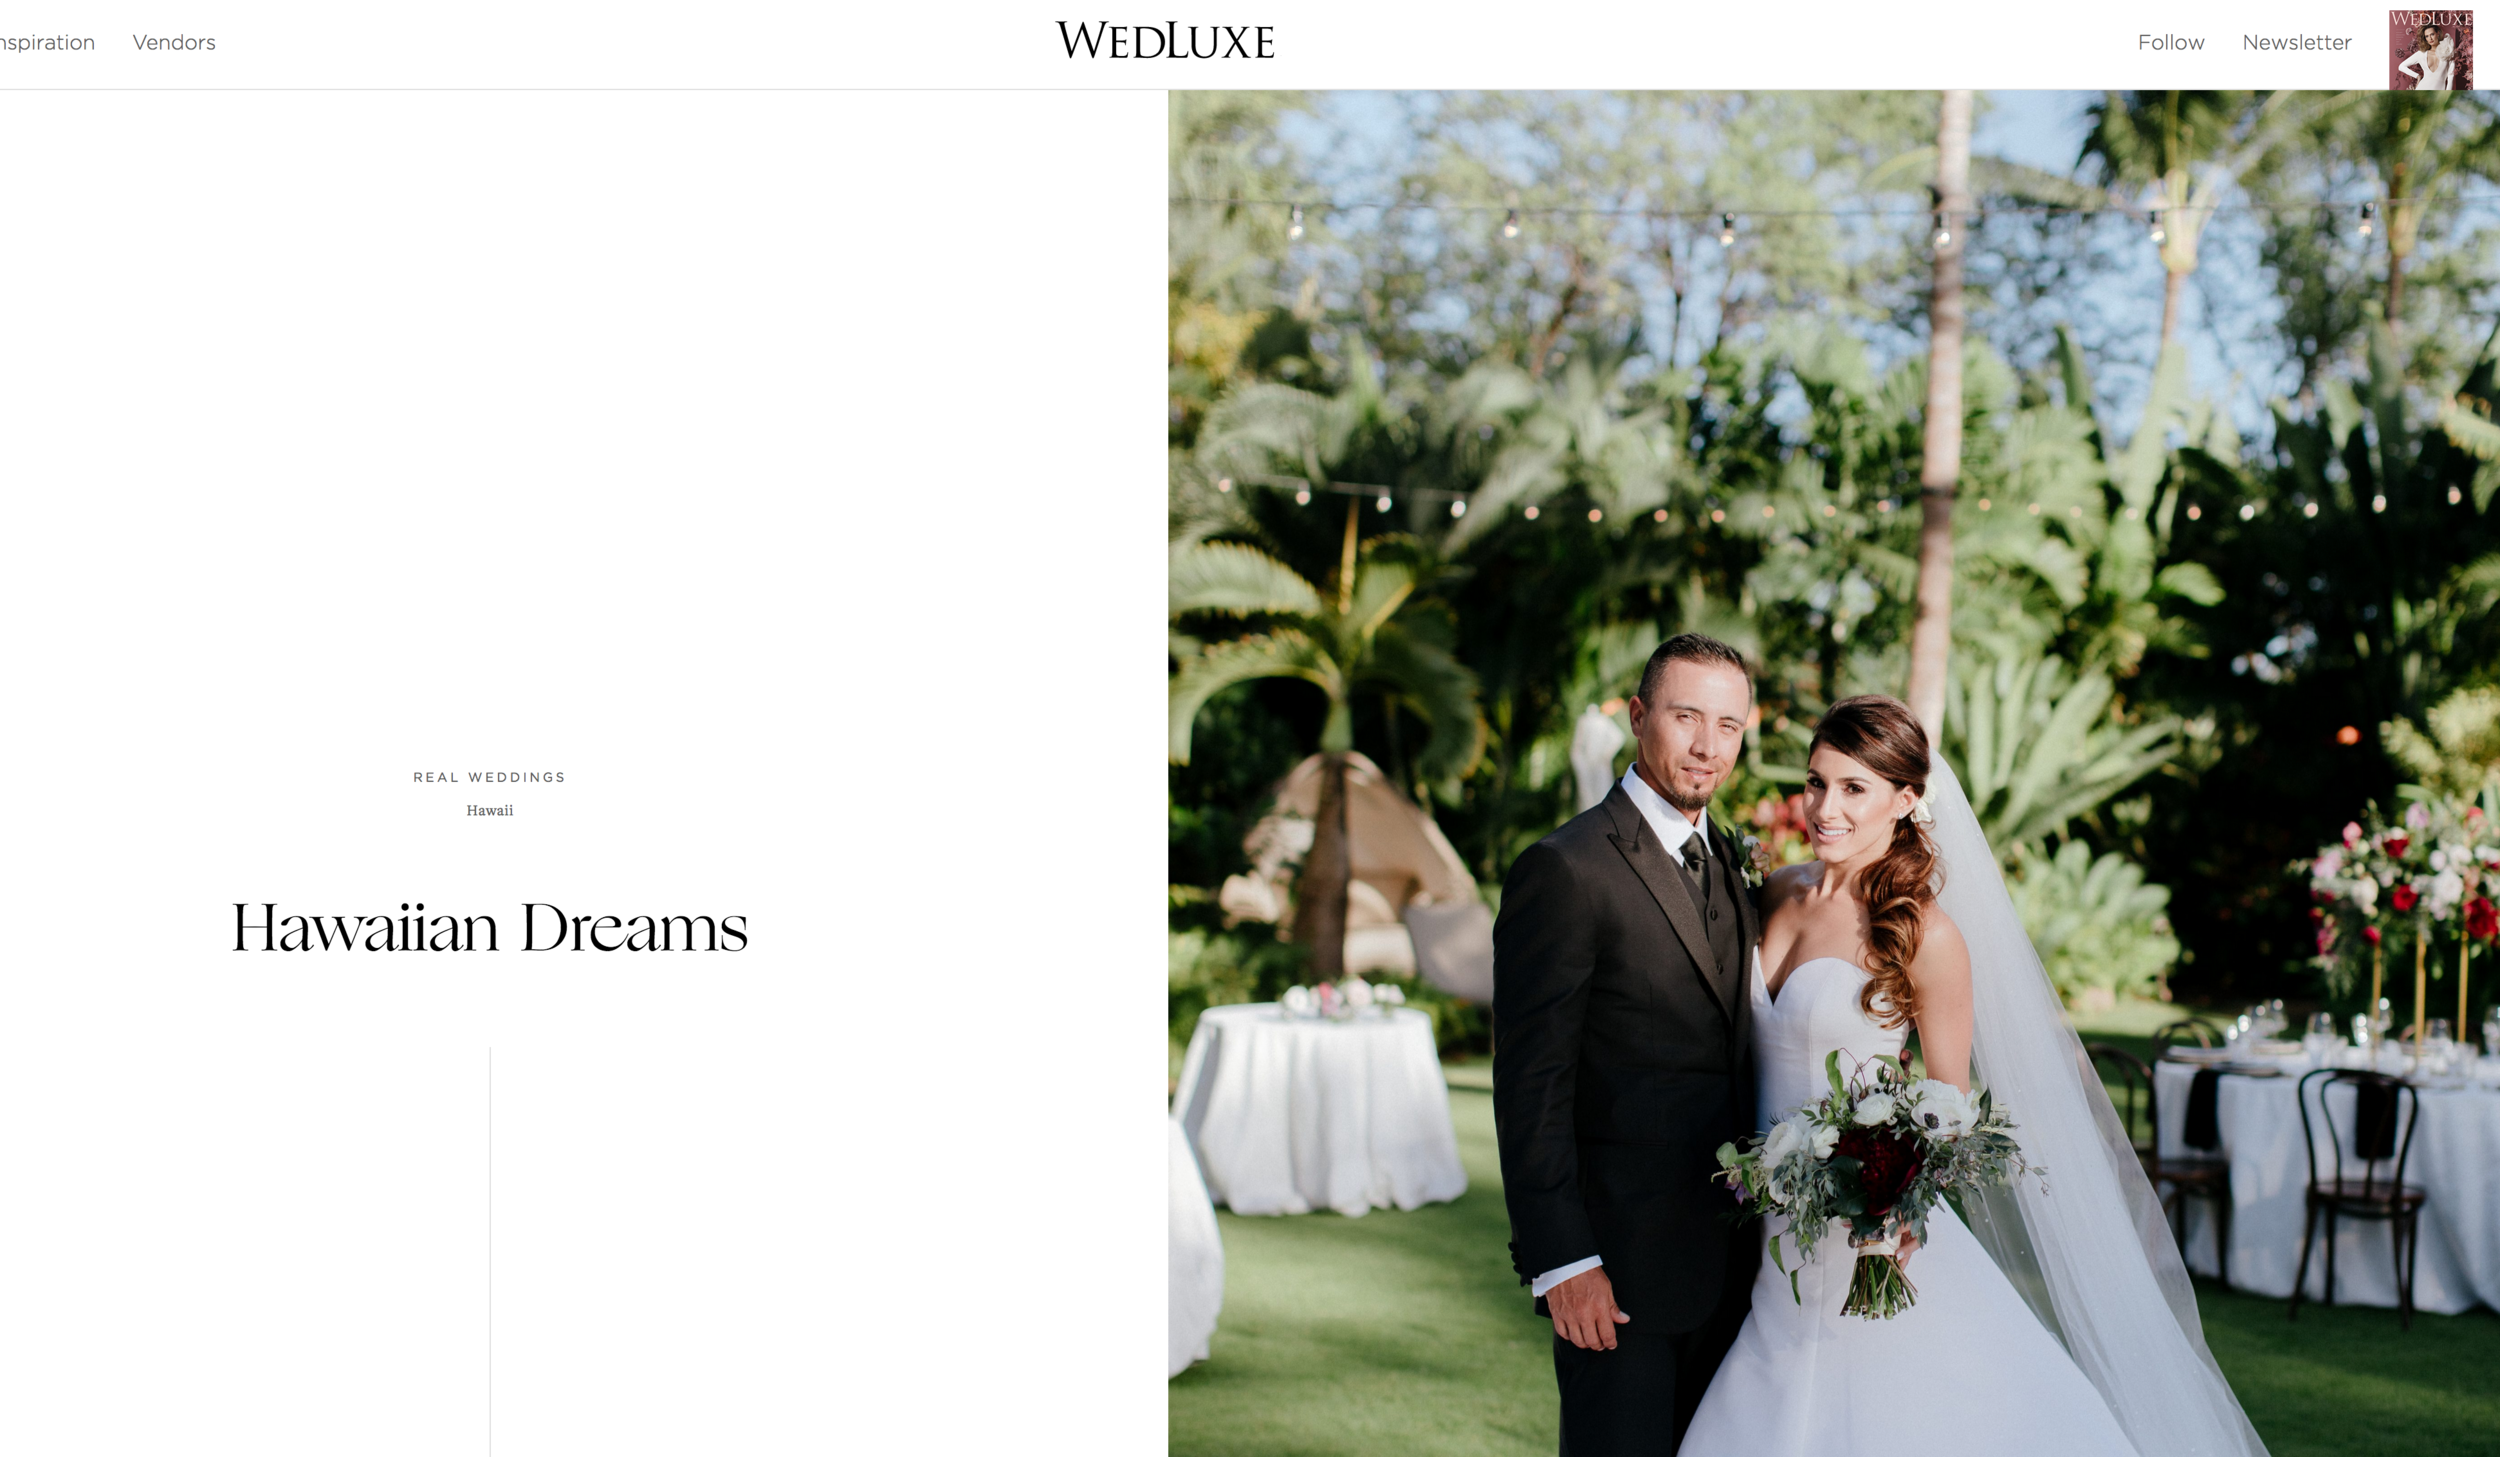 cje-wedluxe-kn.png